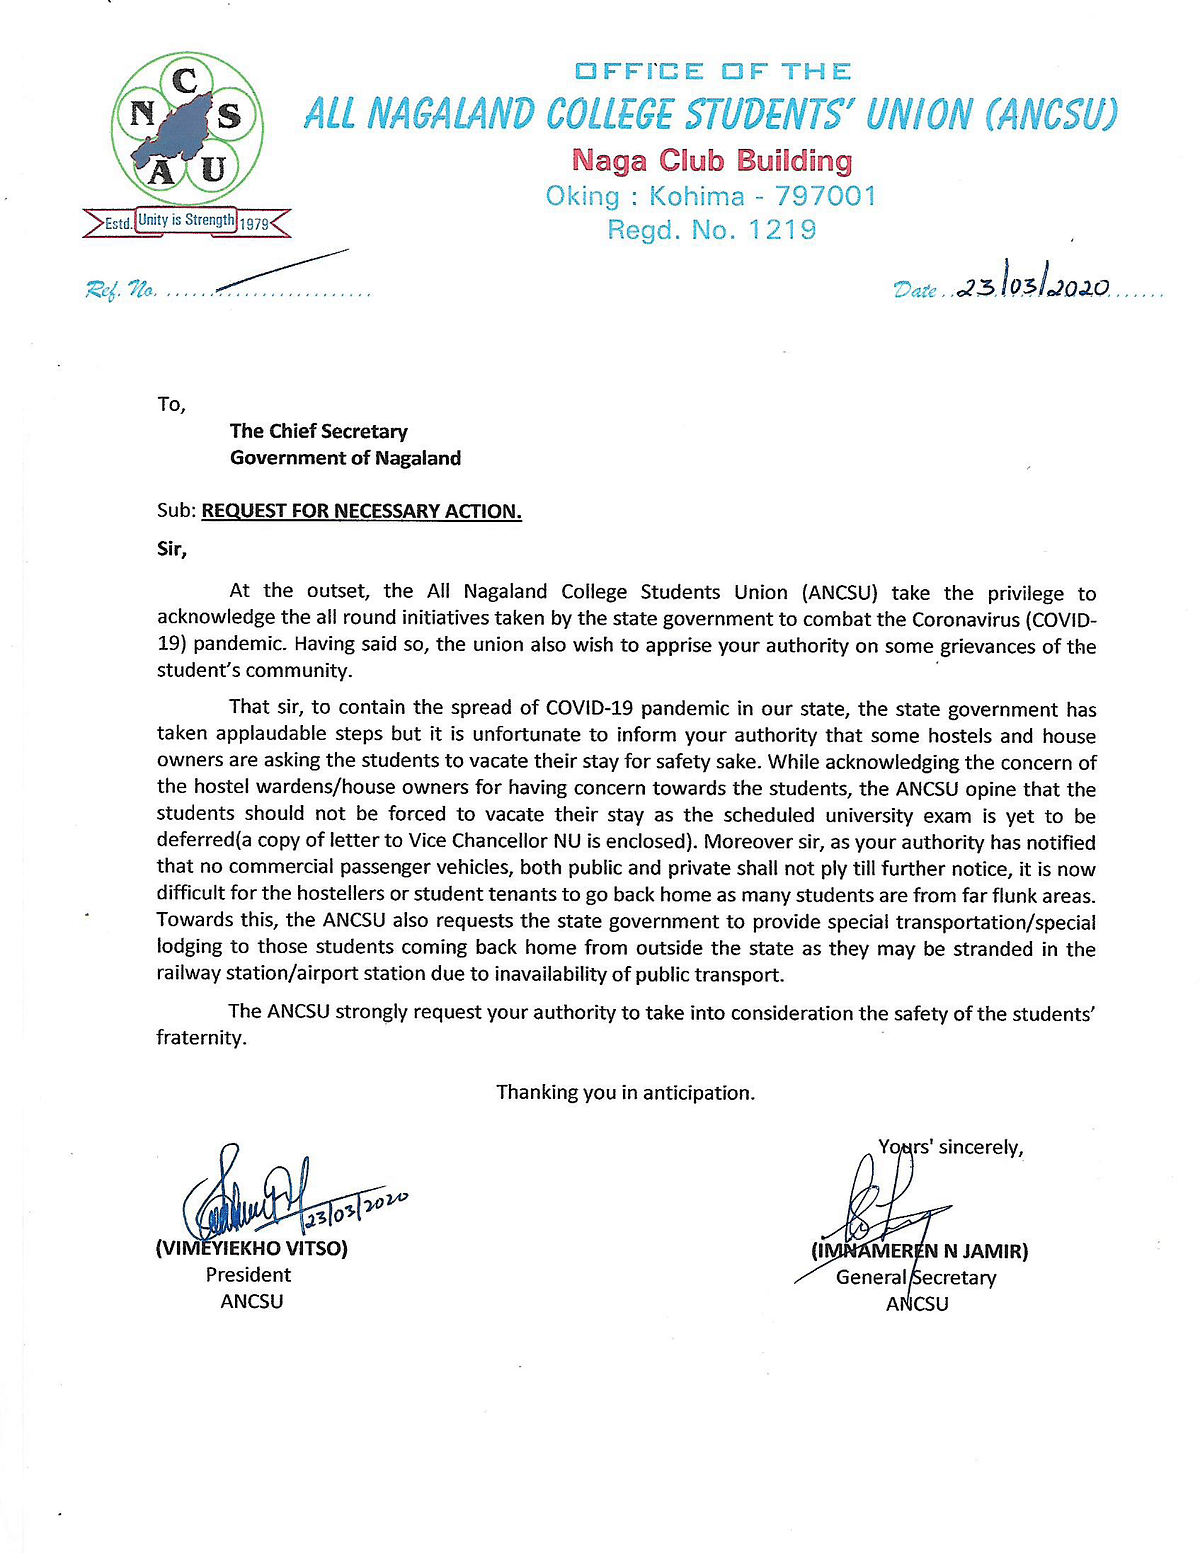 The letter that was written to the chief secretary of the state by ANCSU on Monday